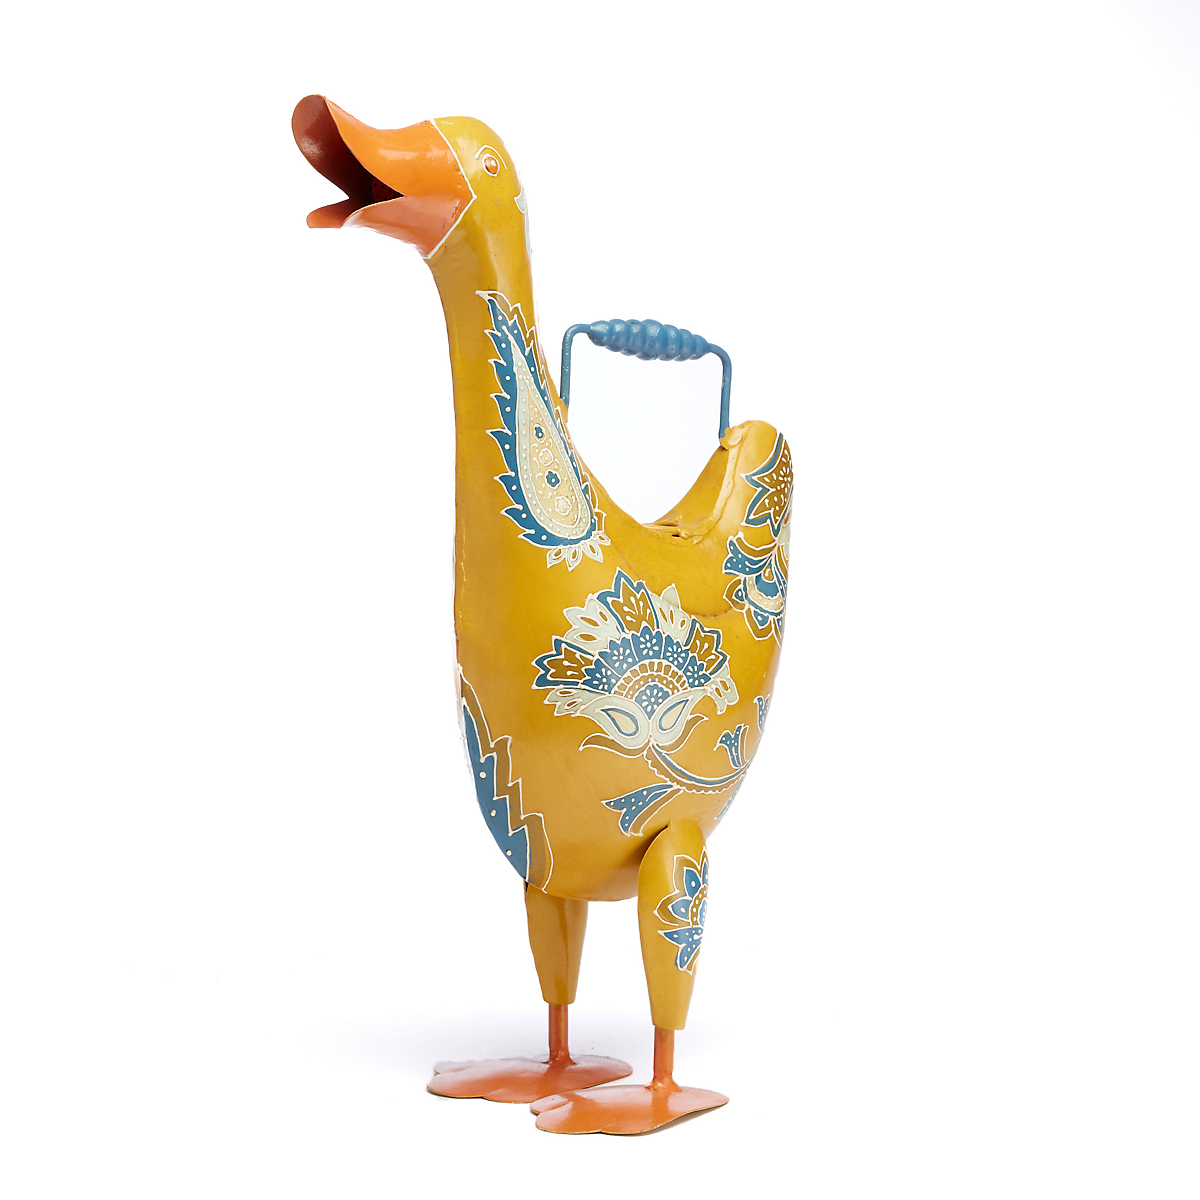 Menagerie Yellow Duck Watering Can